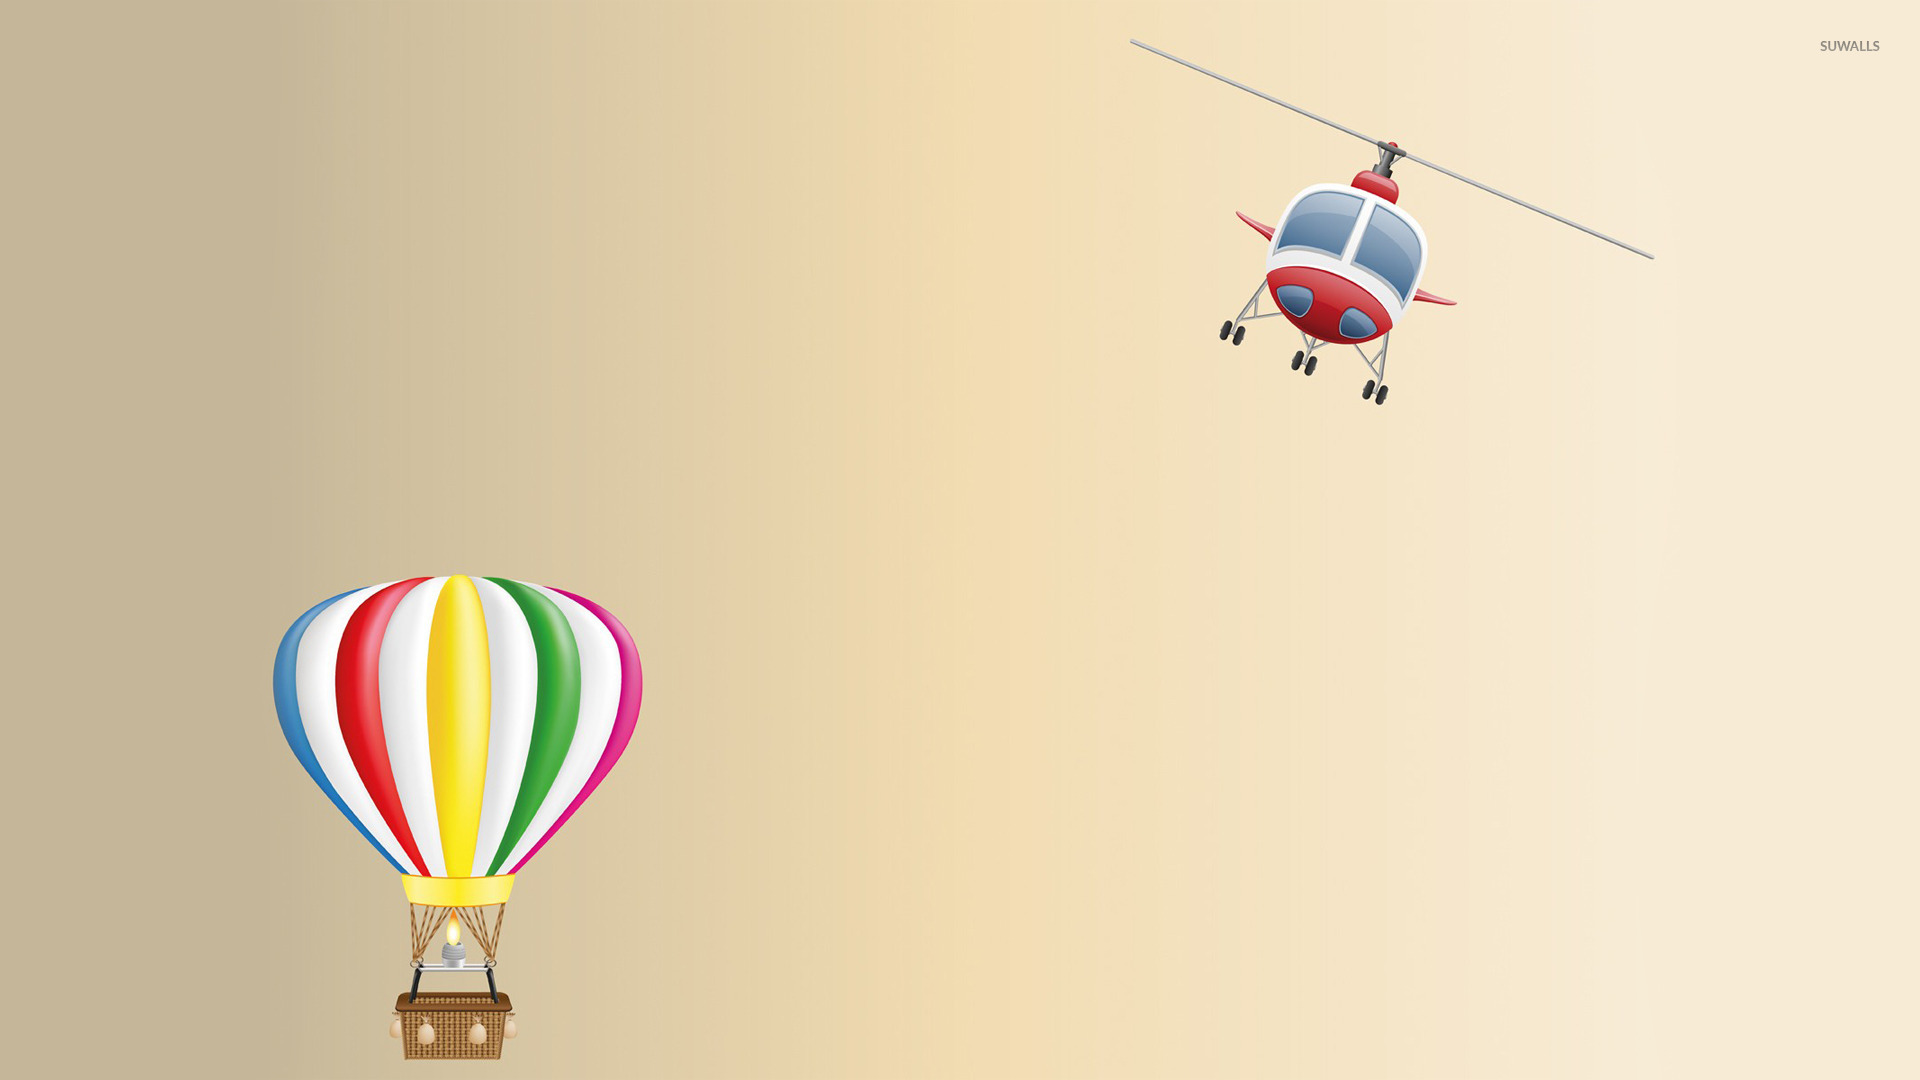 hot air balloon and helicopter wallpaper digital art